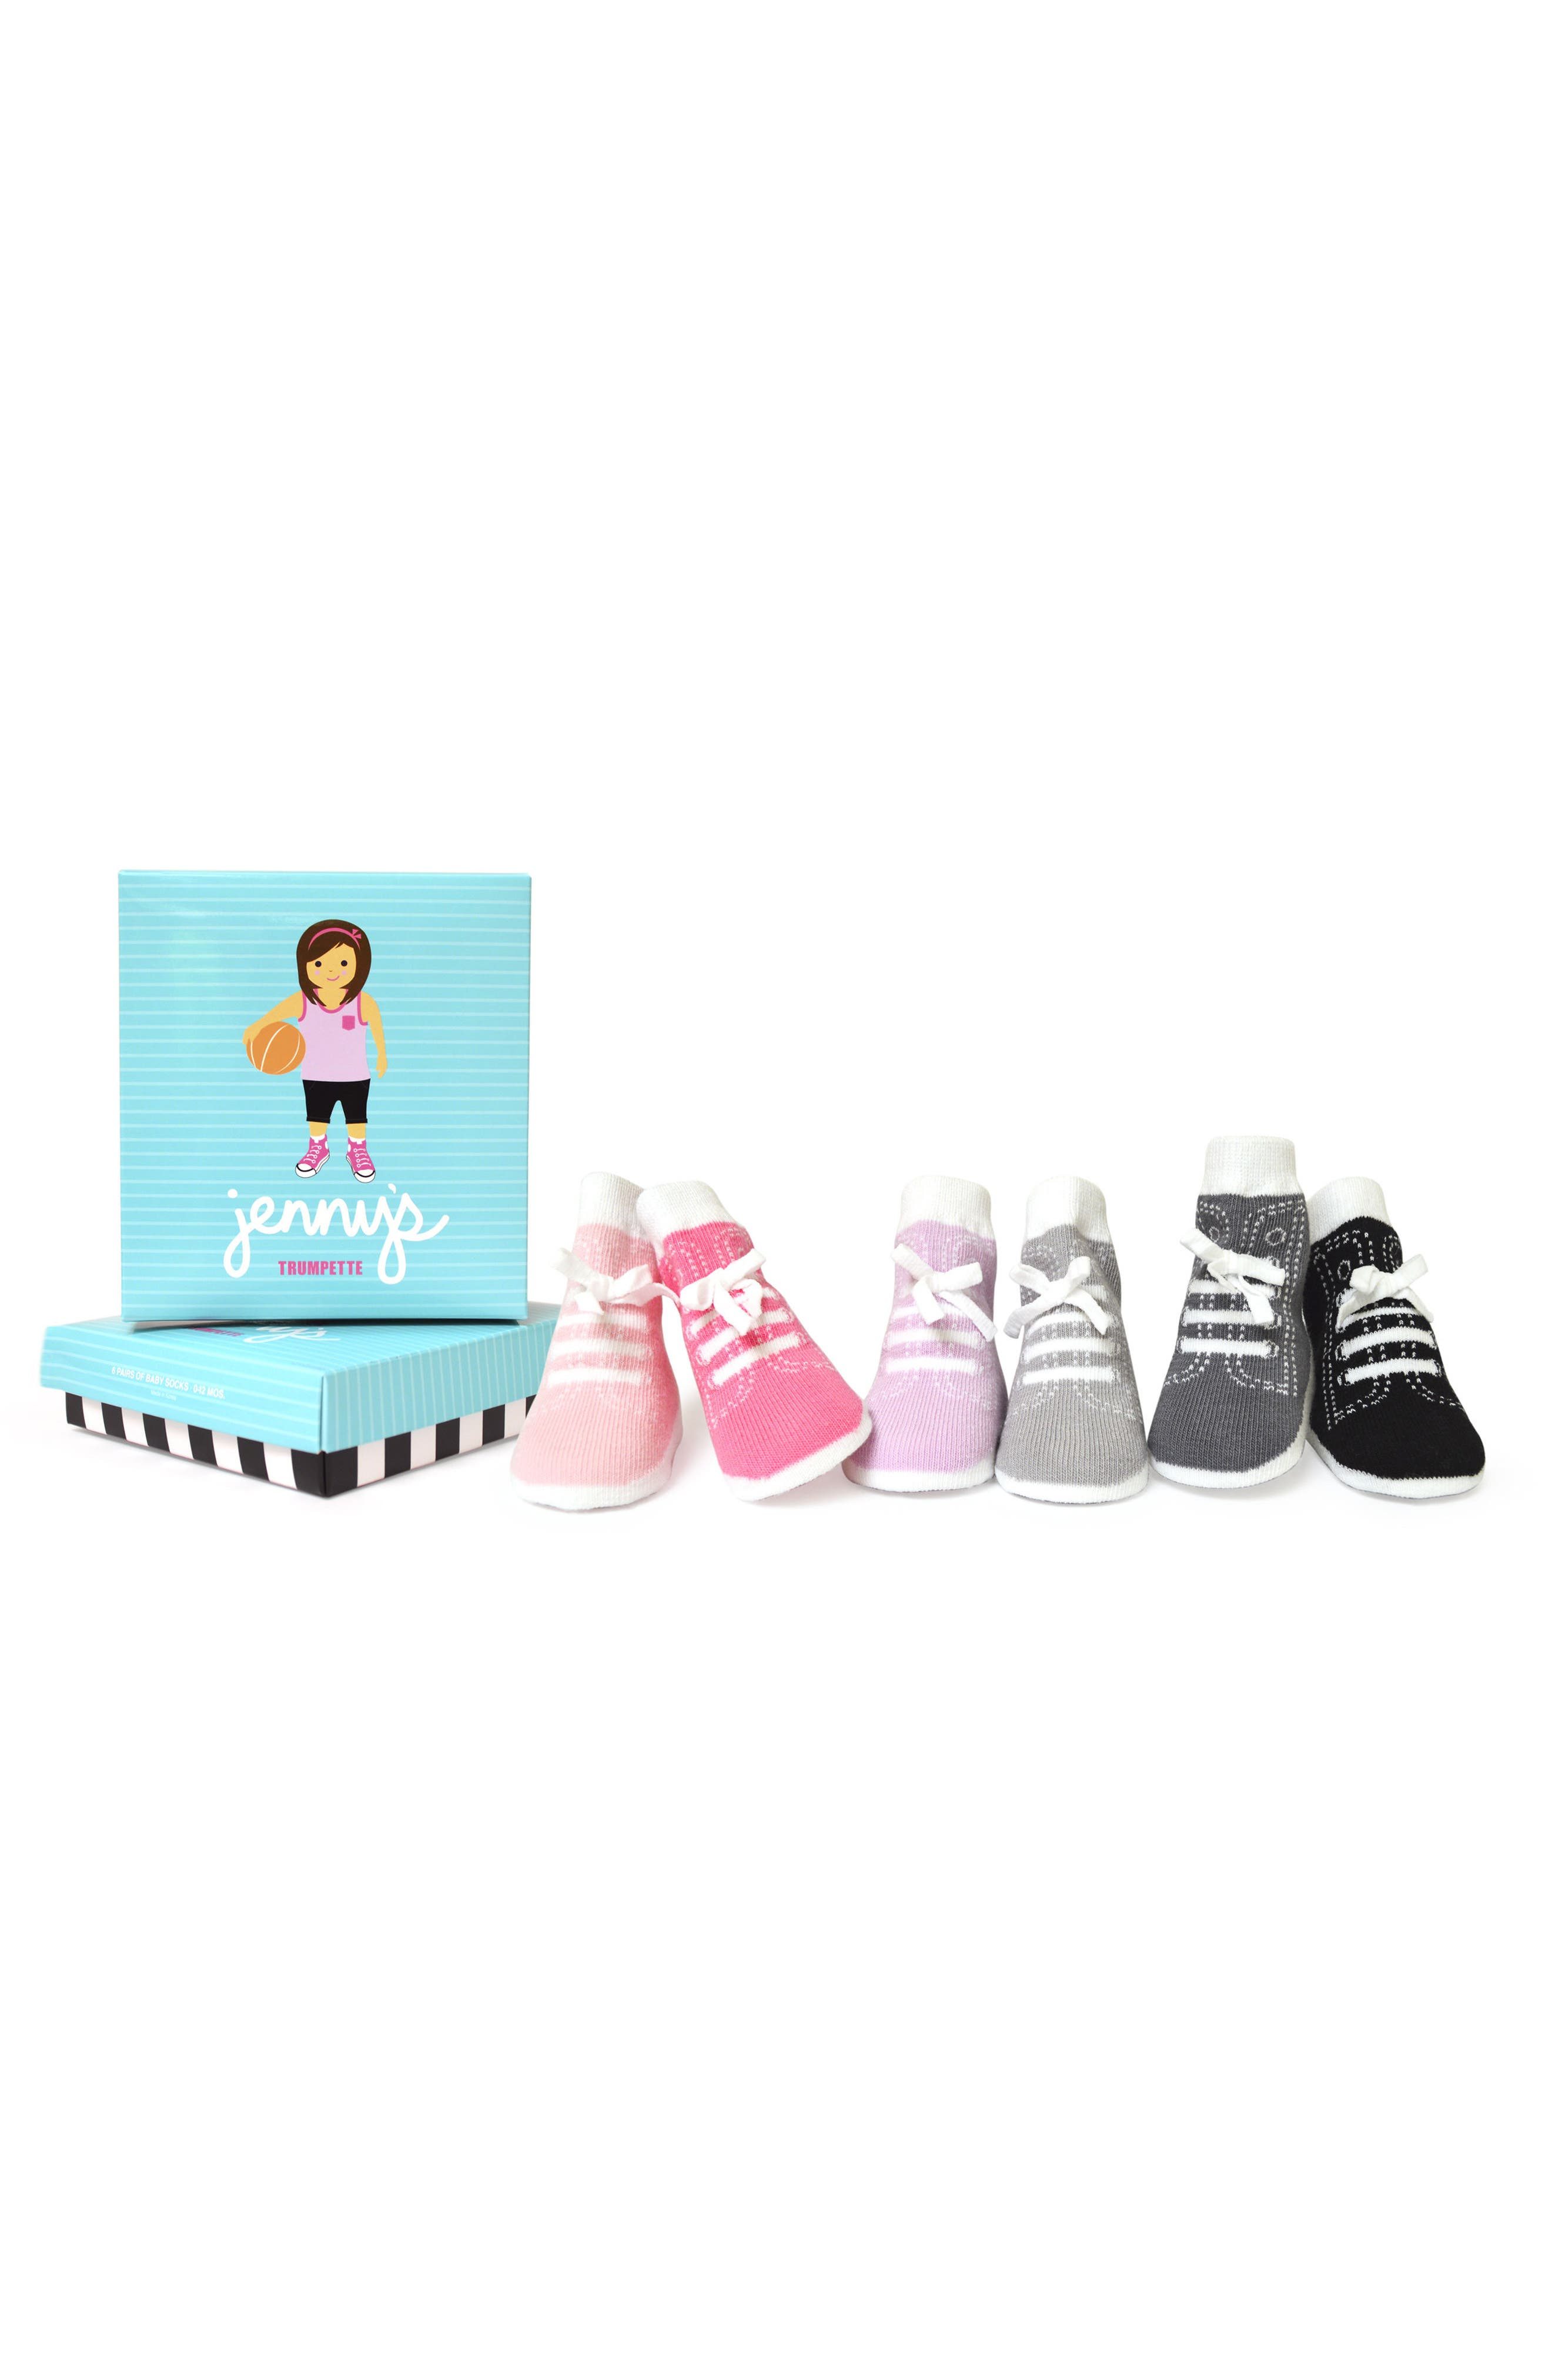 Jenny 6-Pack Socks,                             Main thumbnail 1, color,                             650